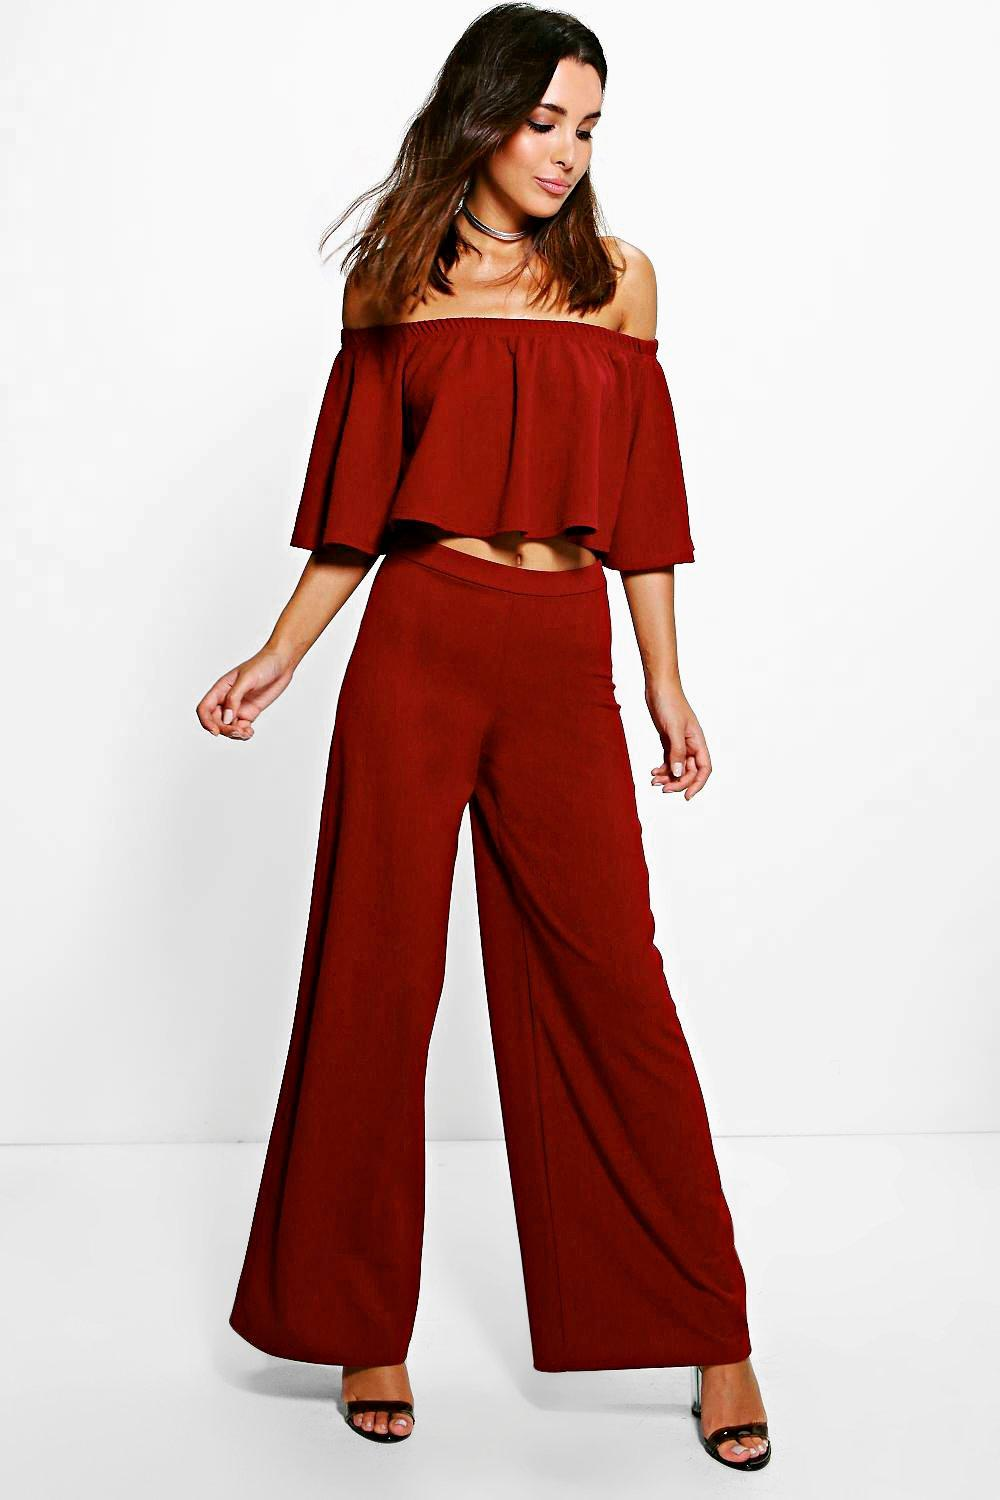 54d610740594b8 Aria Off The Shoulder And Wide Leg Trouser Co-Ord